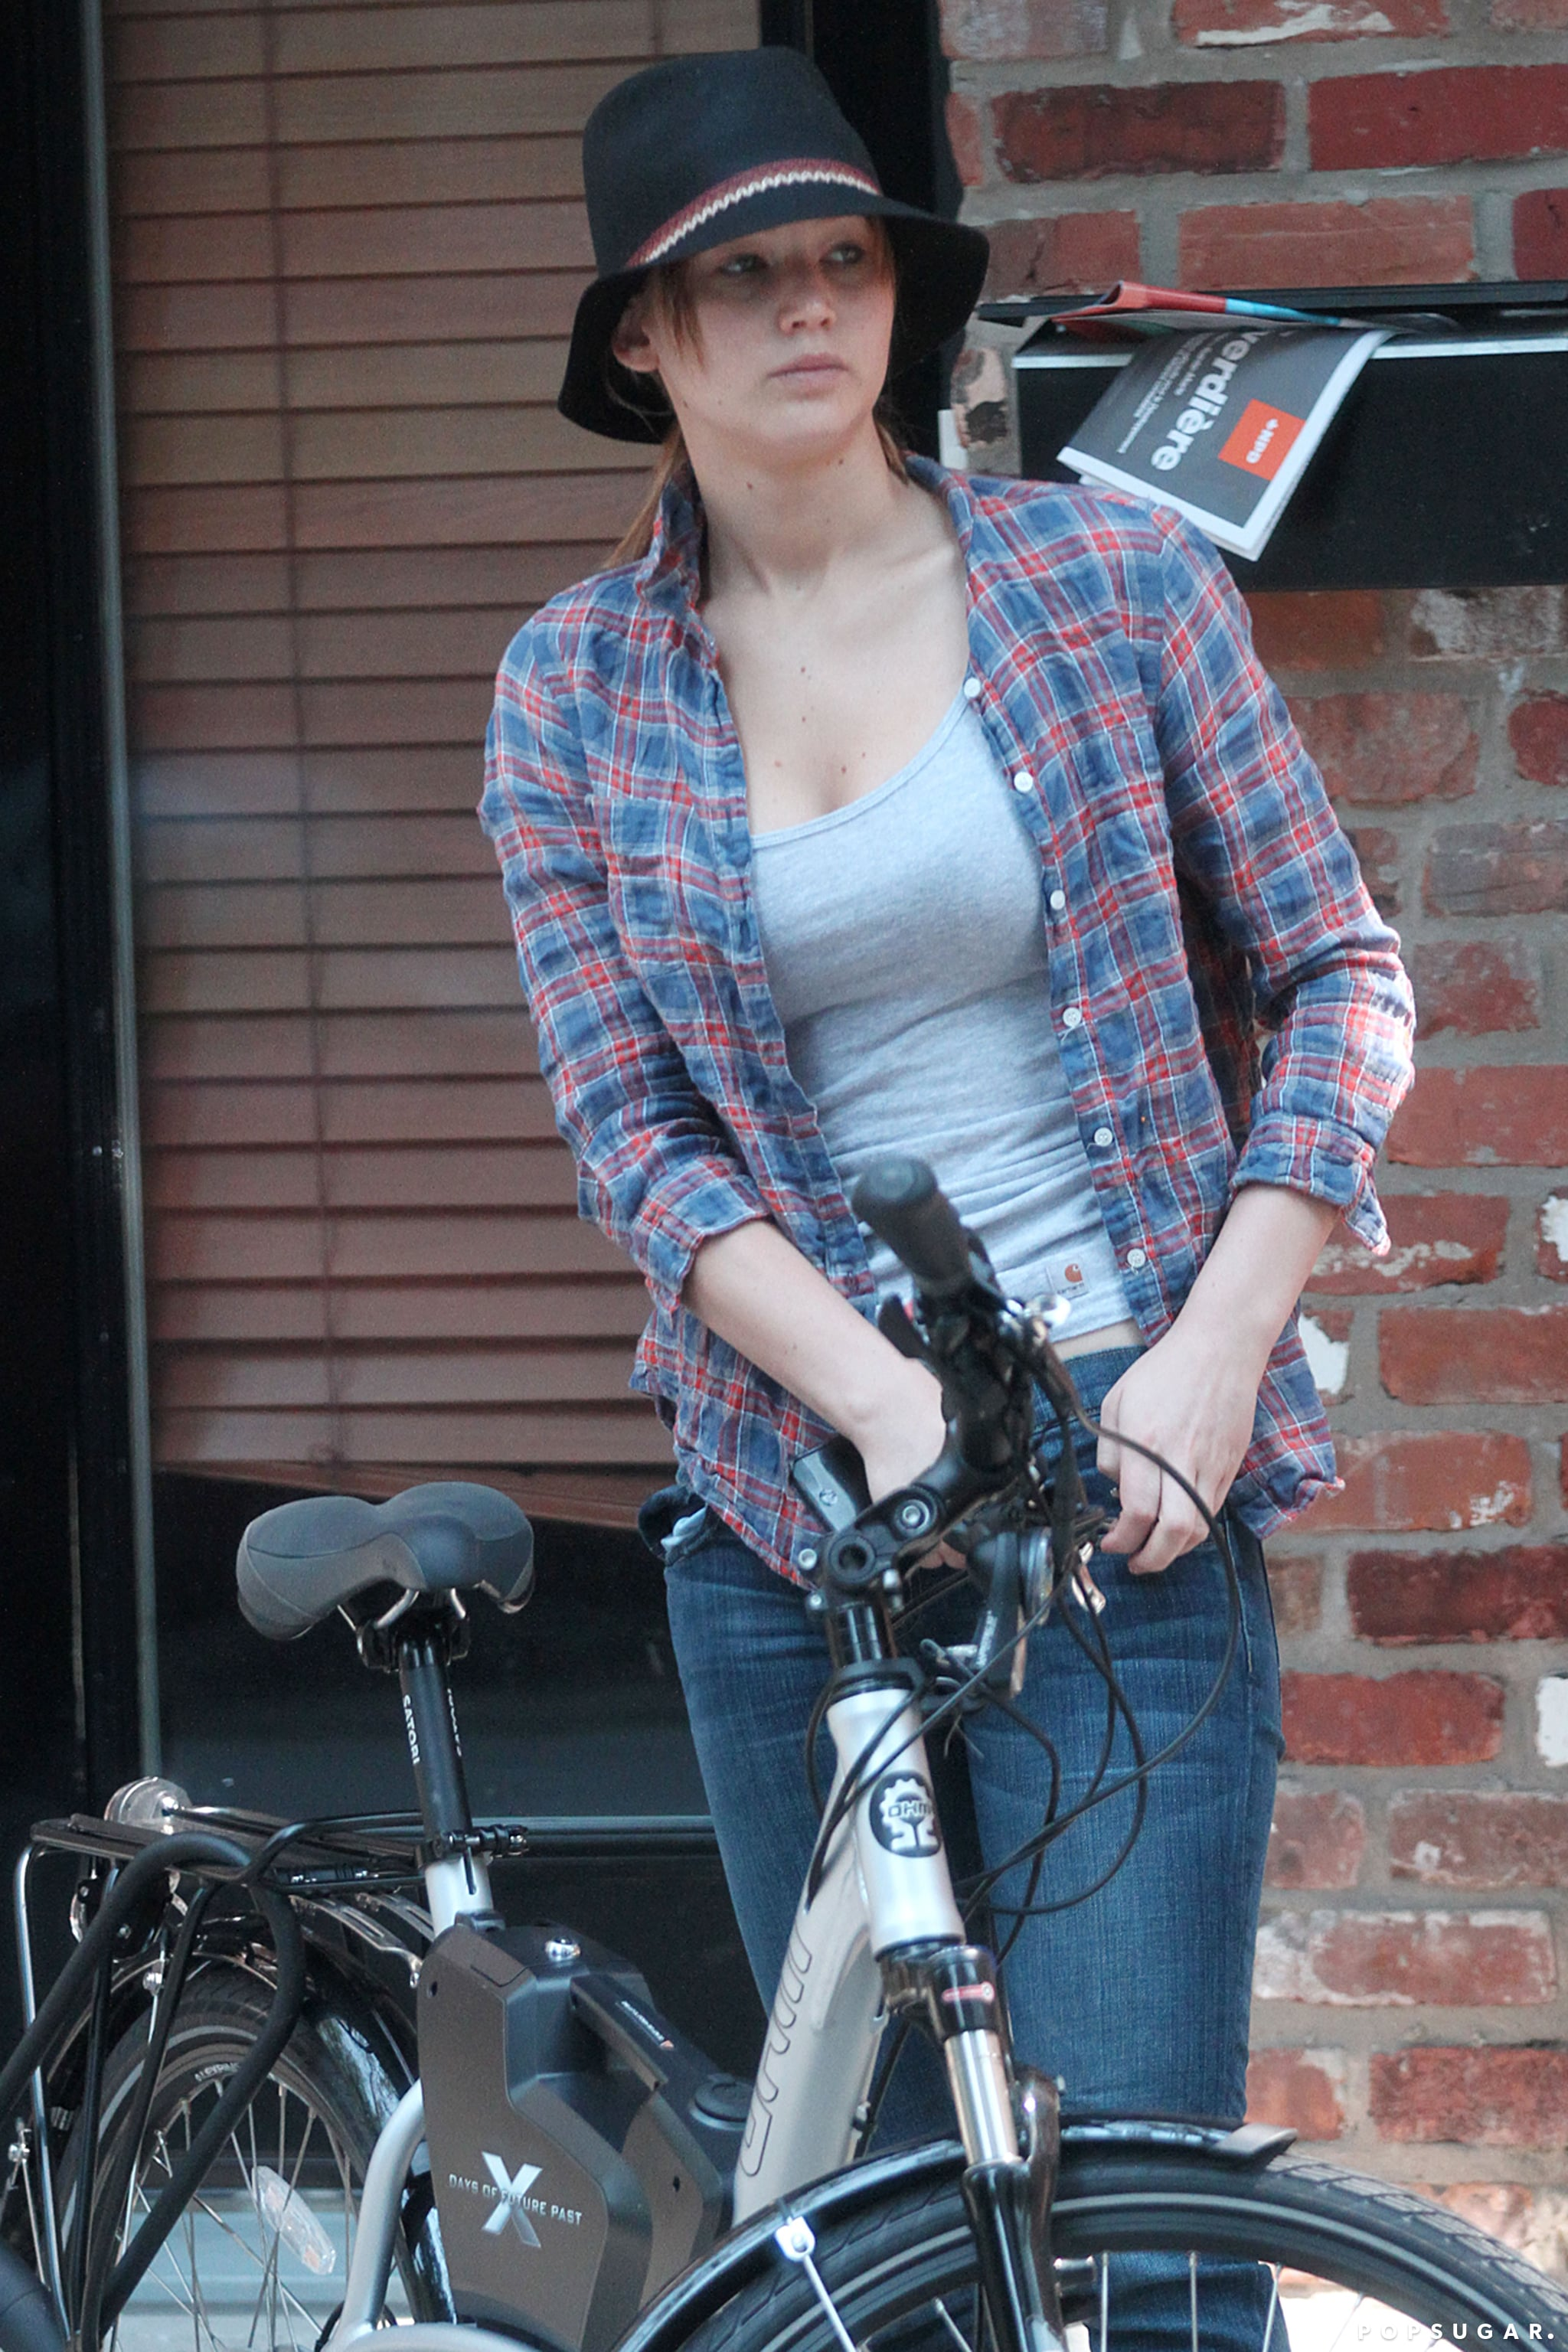 While in Montreal in August, Jennifer Lawrence took a leisurely bike ride around the city.